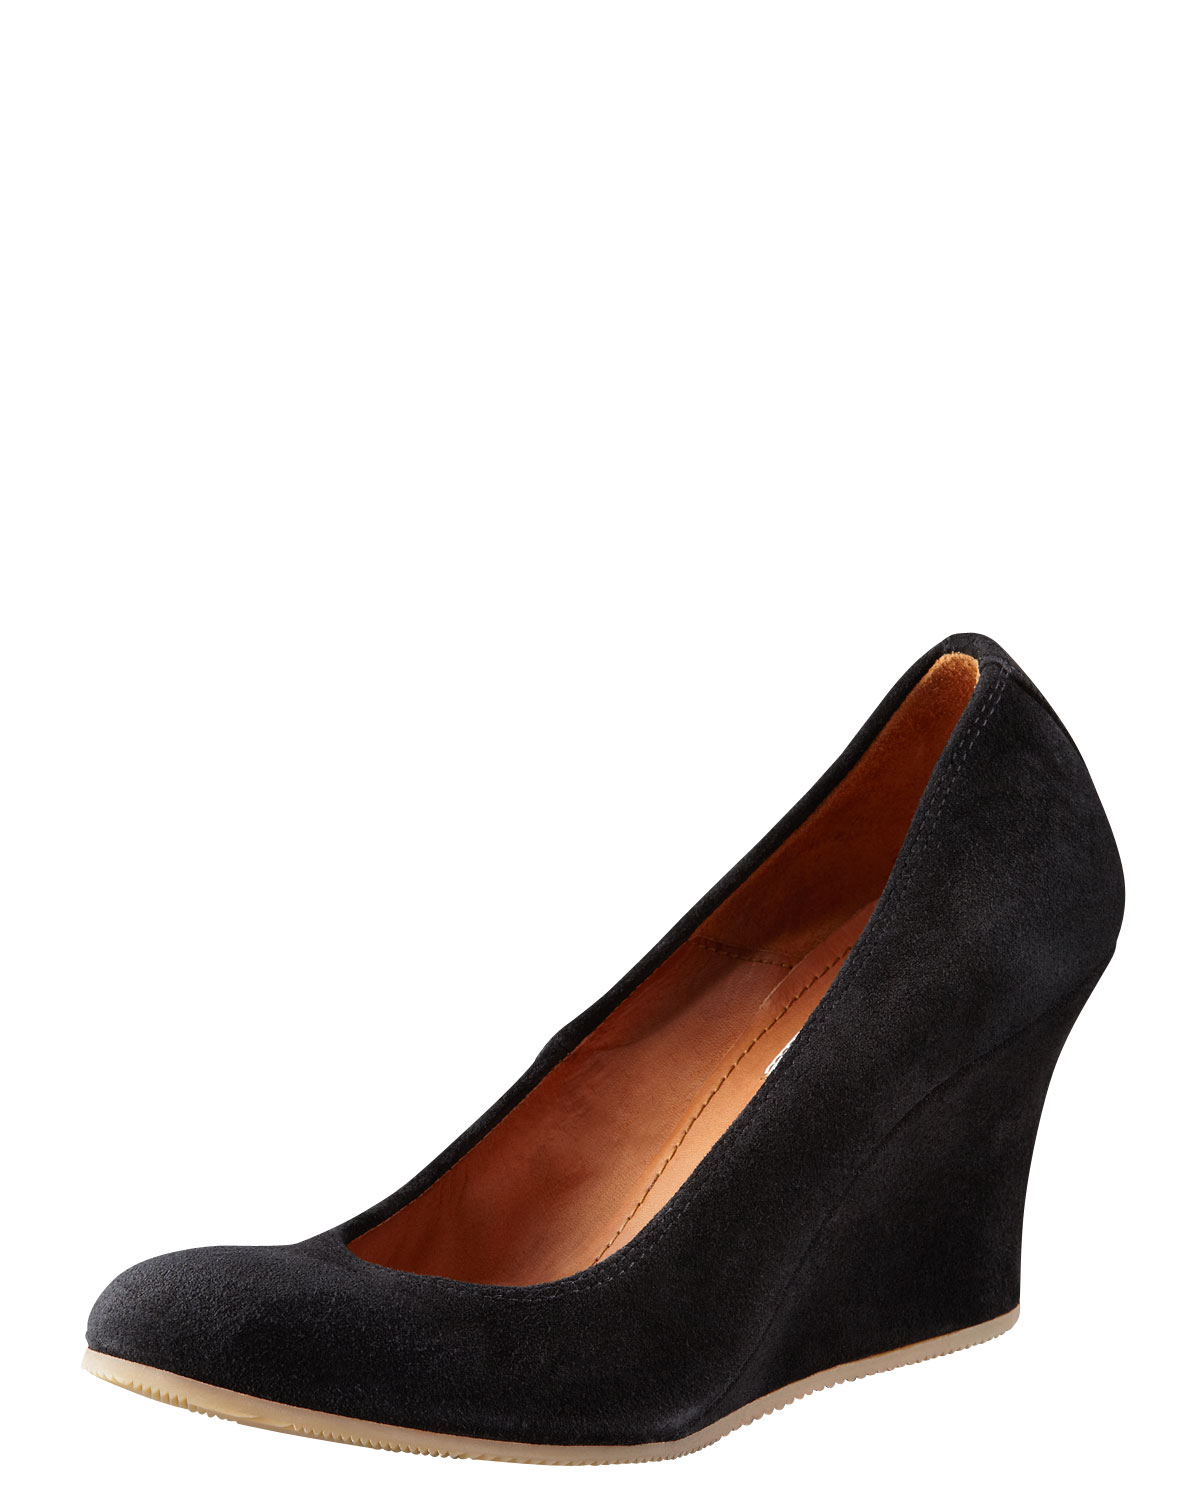 lanvin suede wedge with rubber sole in black lyst